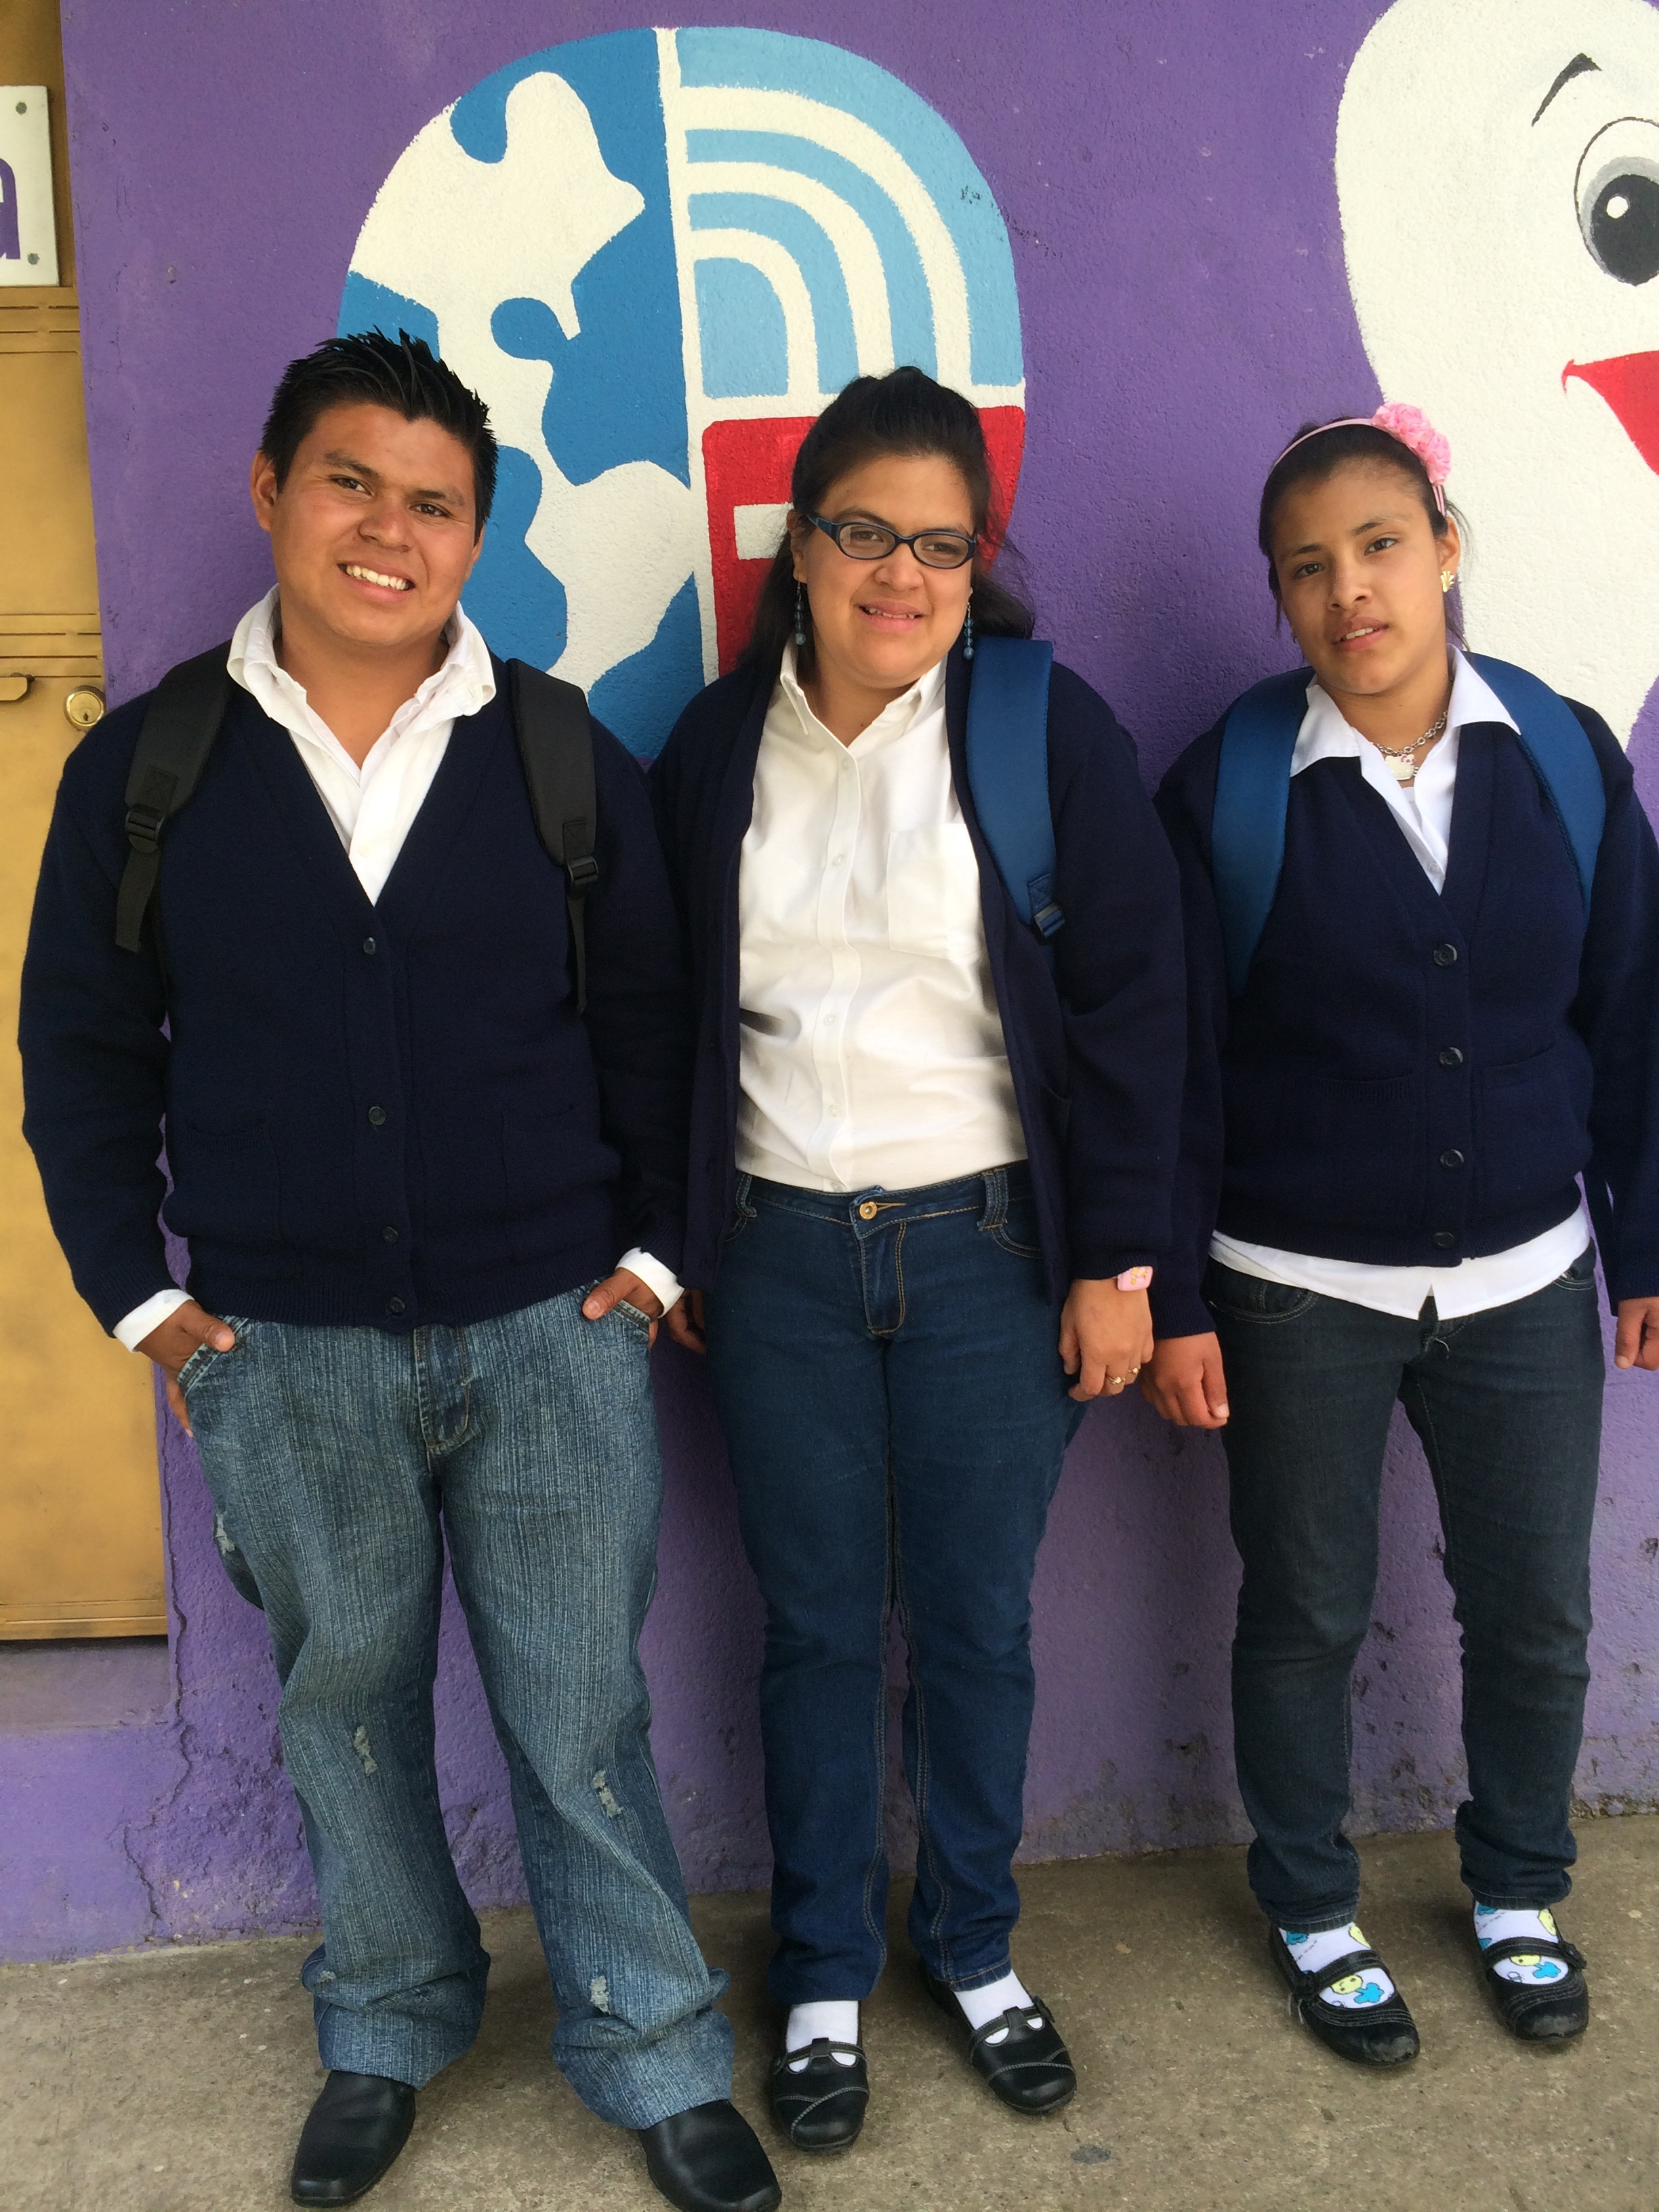 Oscar, Michelle and Tatiana on their way to school in Antigua